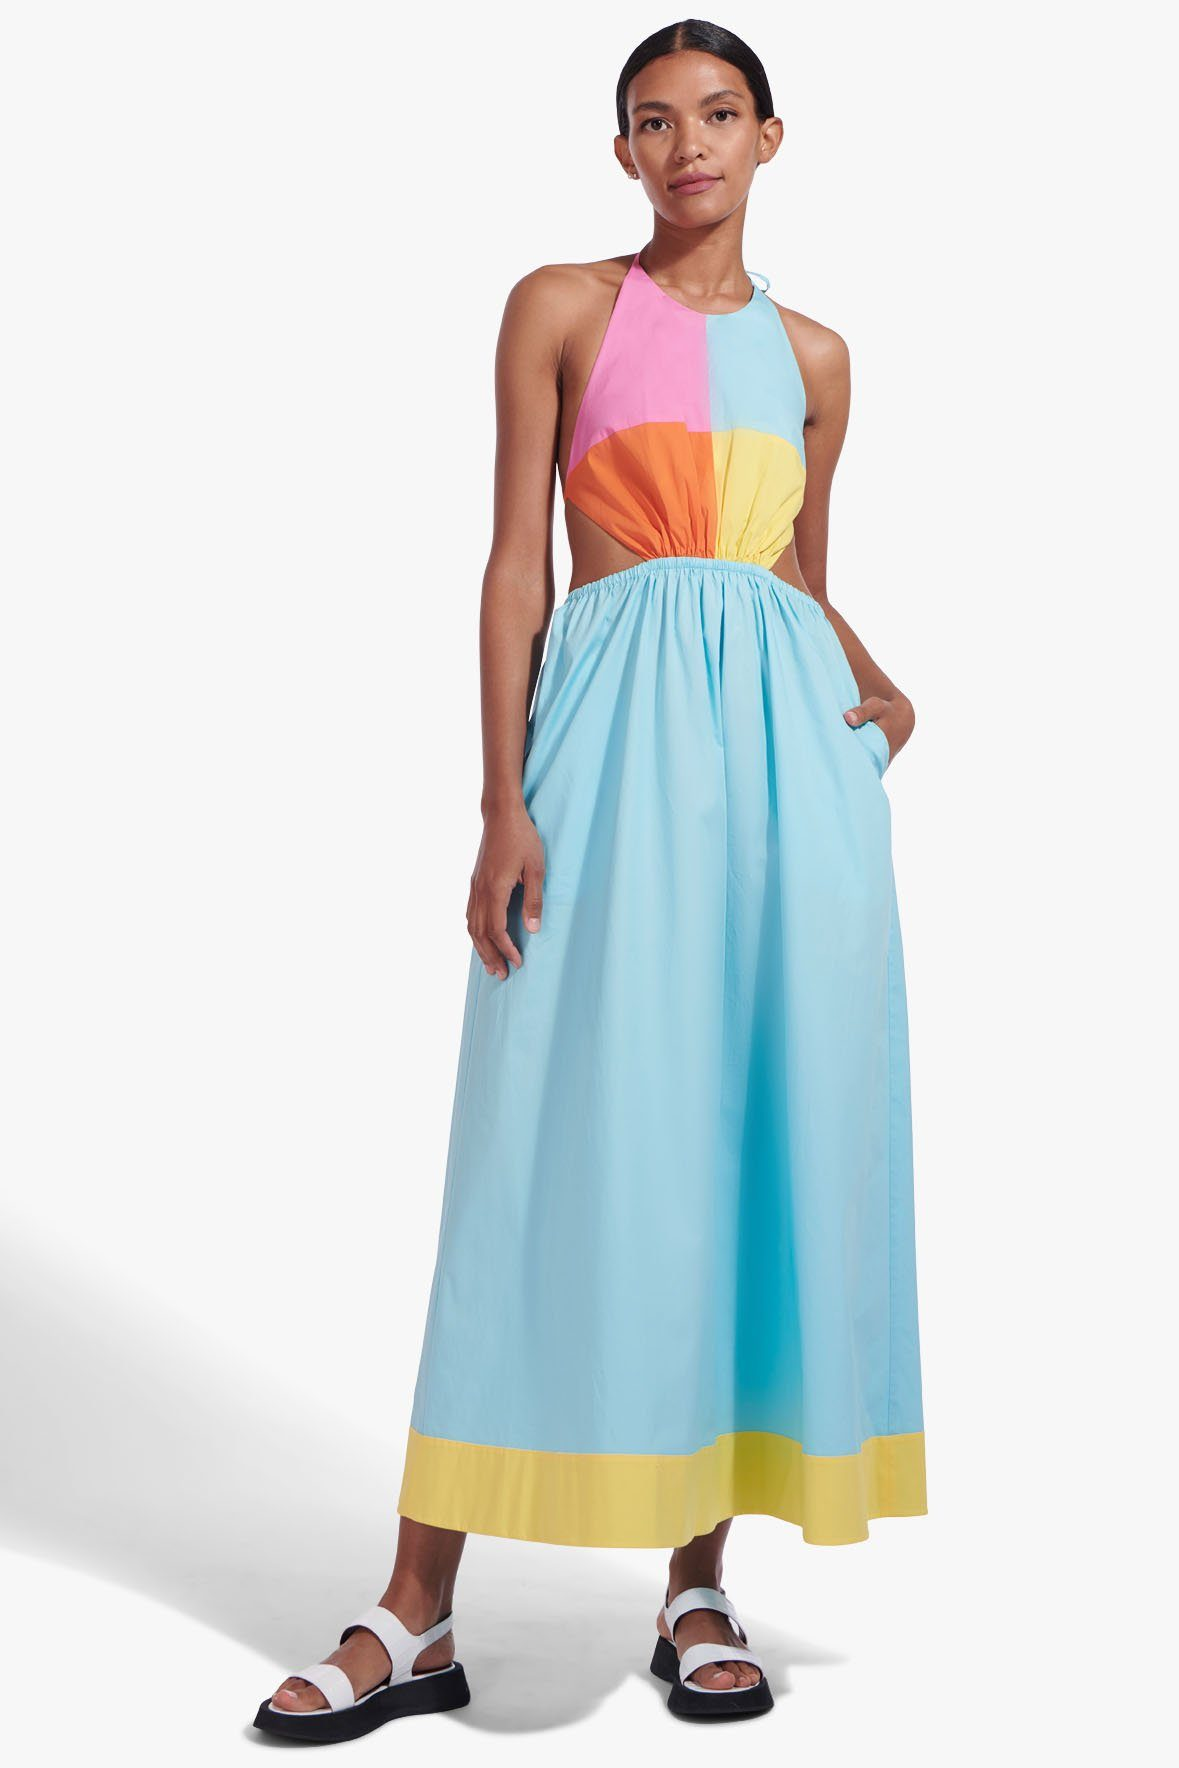 STAUD ELIANA DRESS | TURQUOISE MULTI